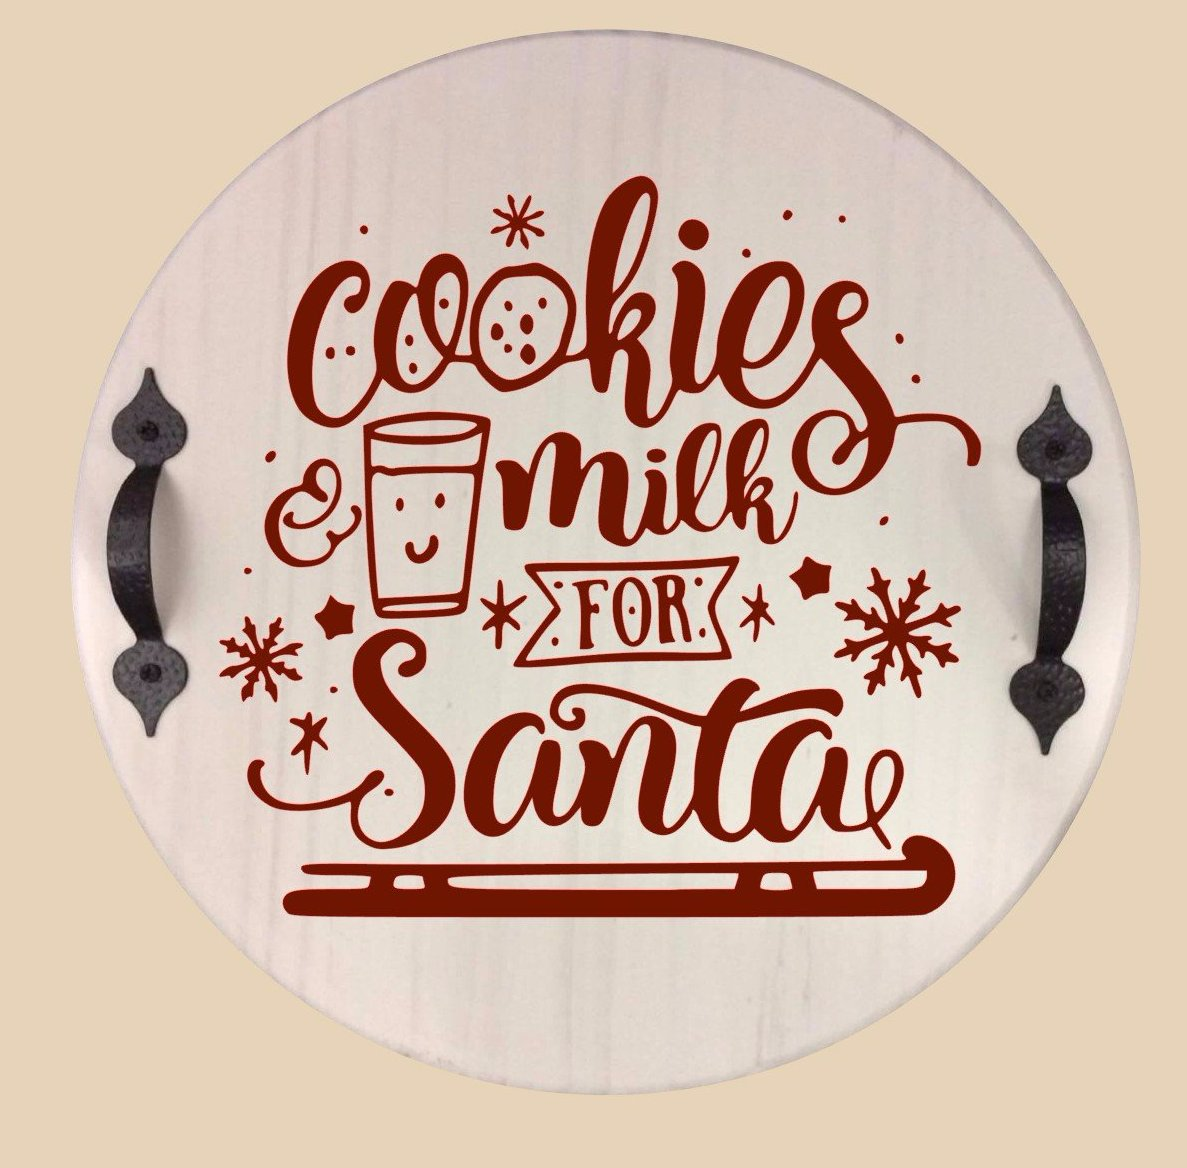 Cookie Tray at Olive tree Dec 6th 6pm